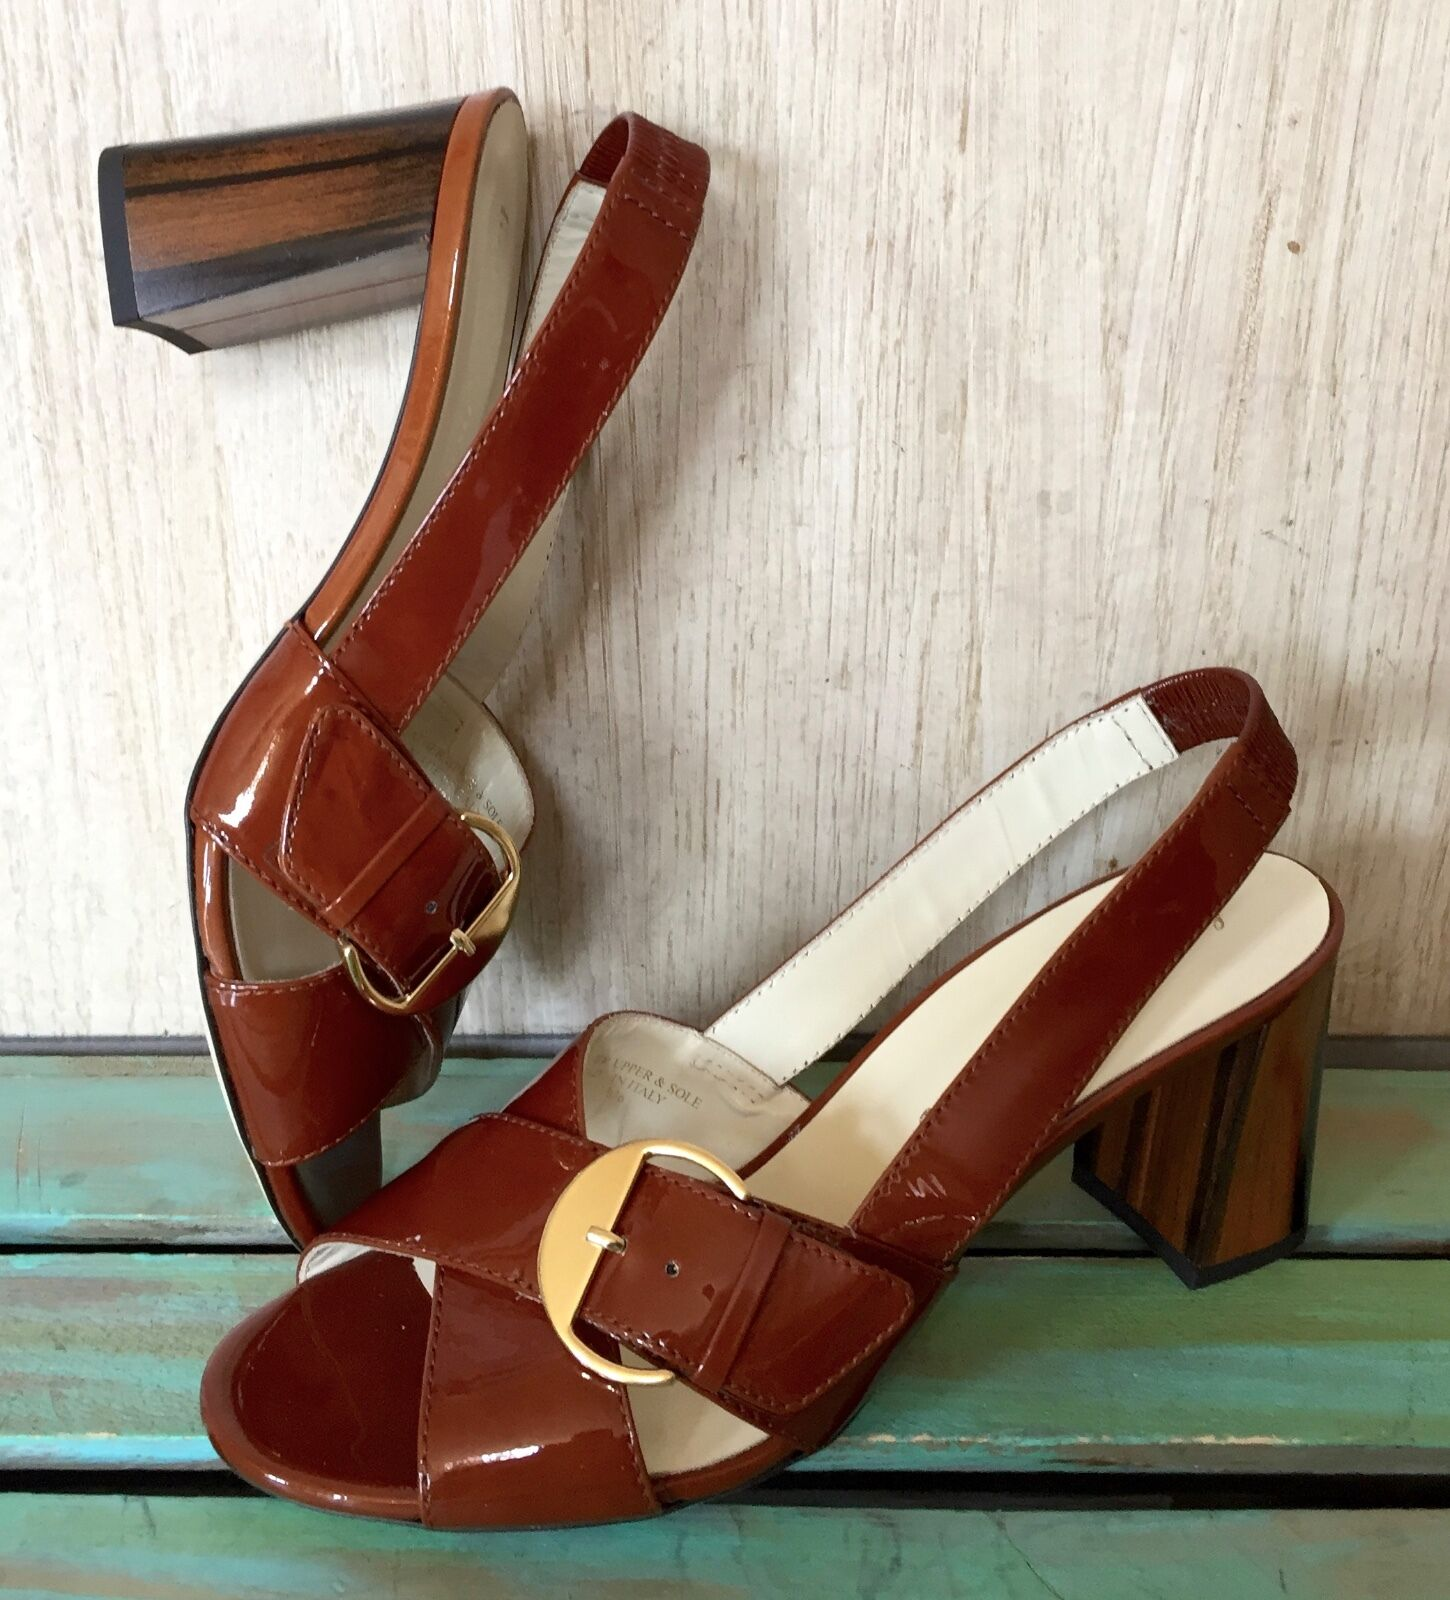 NIB Anthropologie Bettye Muller brown rust Patent Leather Slingback Sandals 38/8